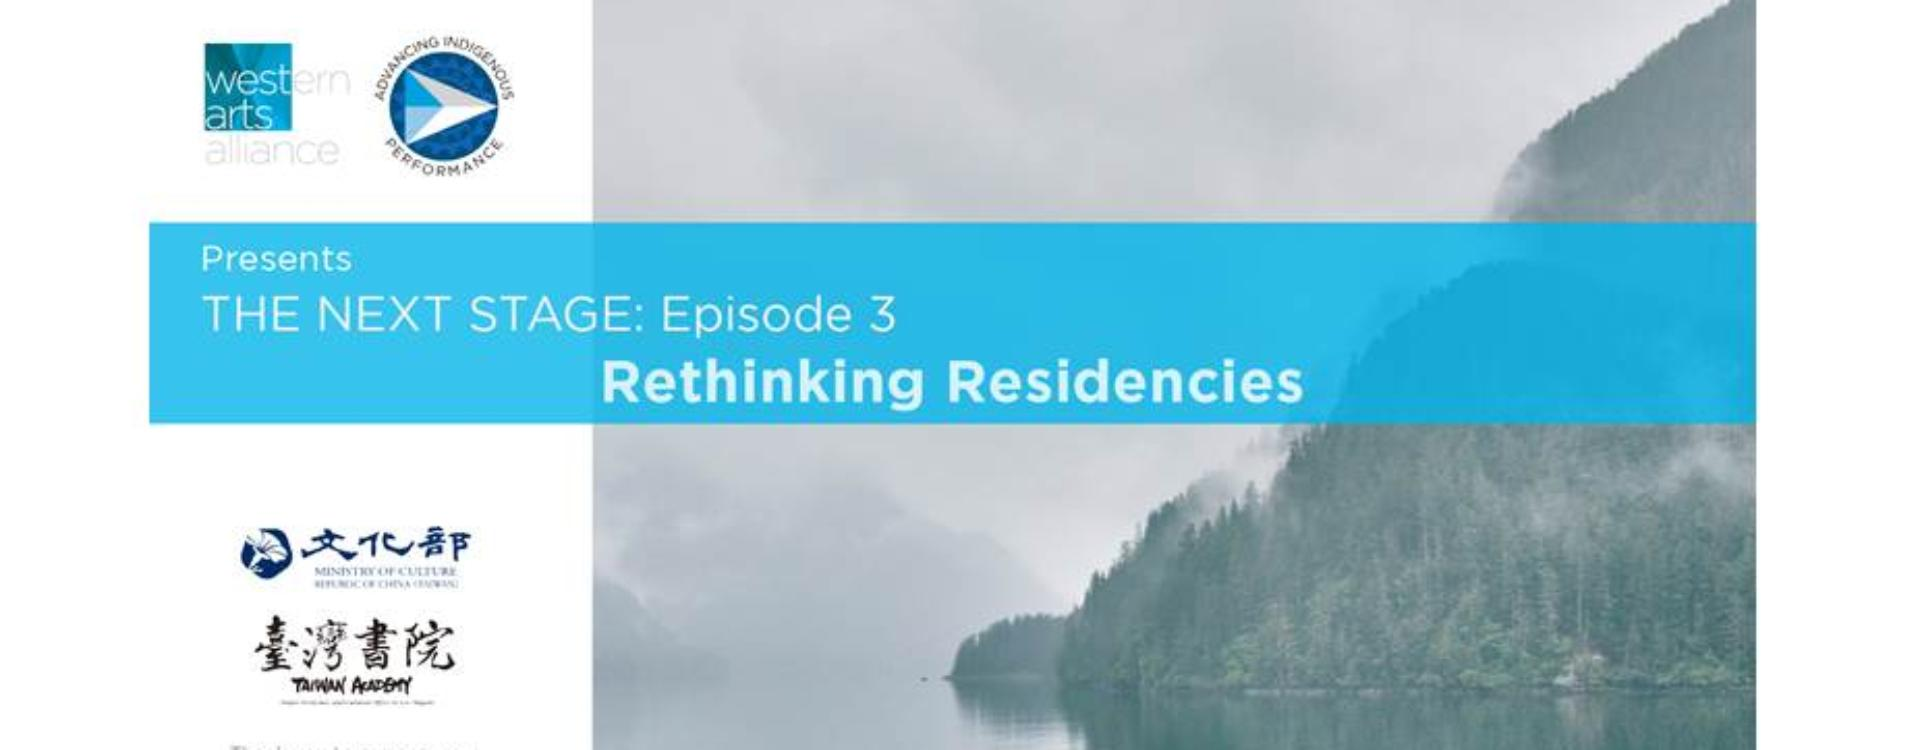 """Taiwanese Artist Chou Tung-yen Invited to Rethink Relations Among Artists, Communities and Environment in """"The Next Stage"""" Webinar Series Episode 3「另開新視窗」"""